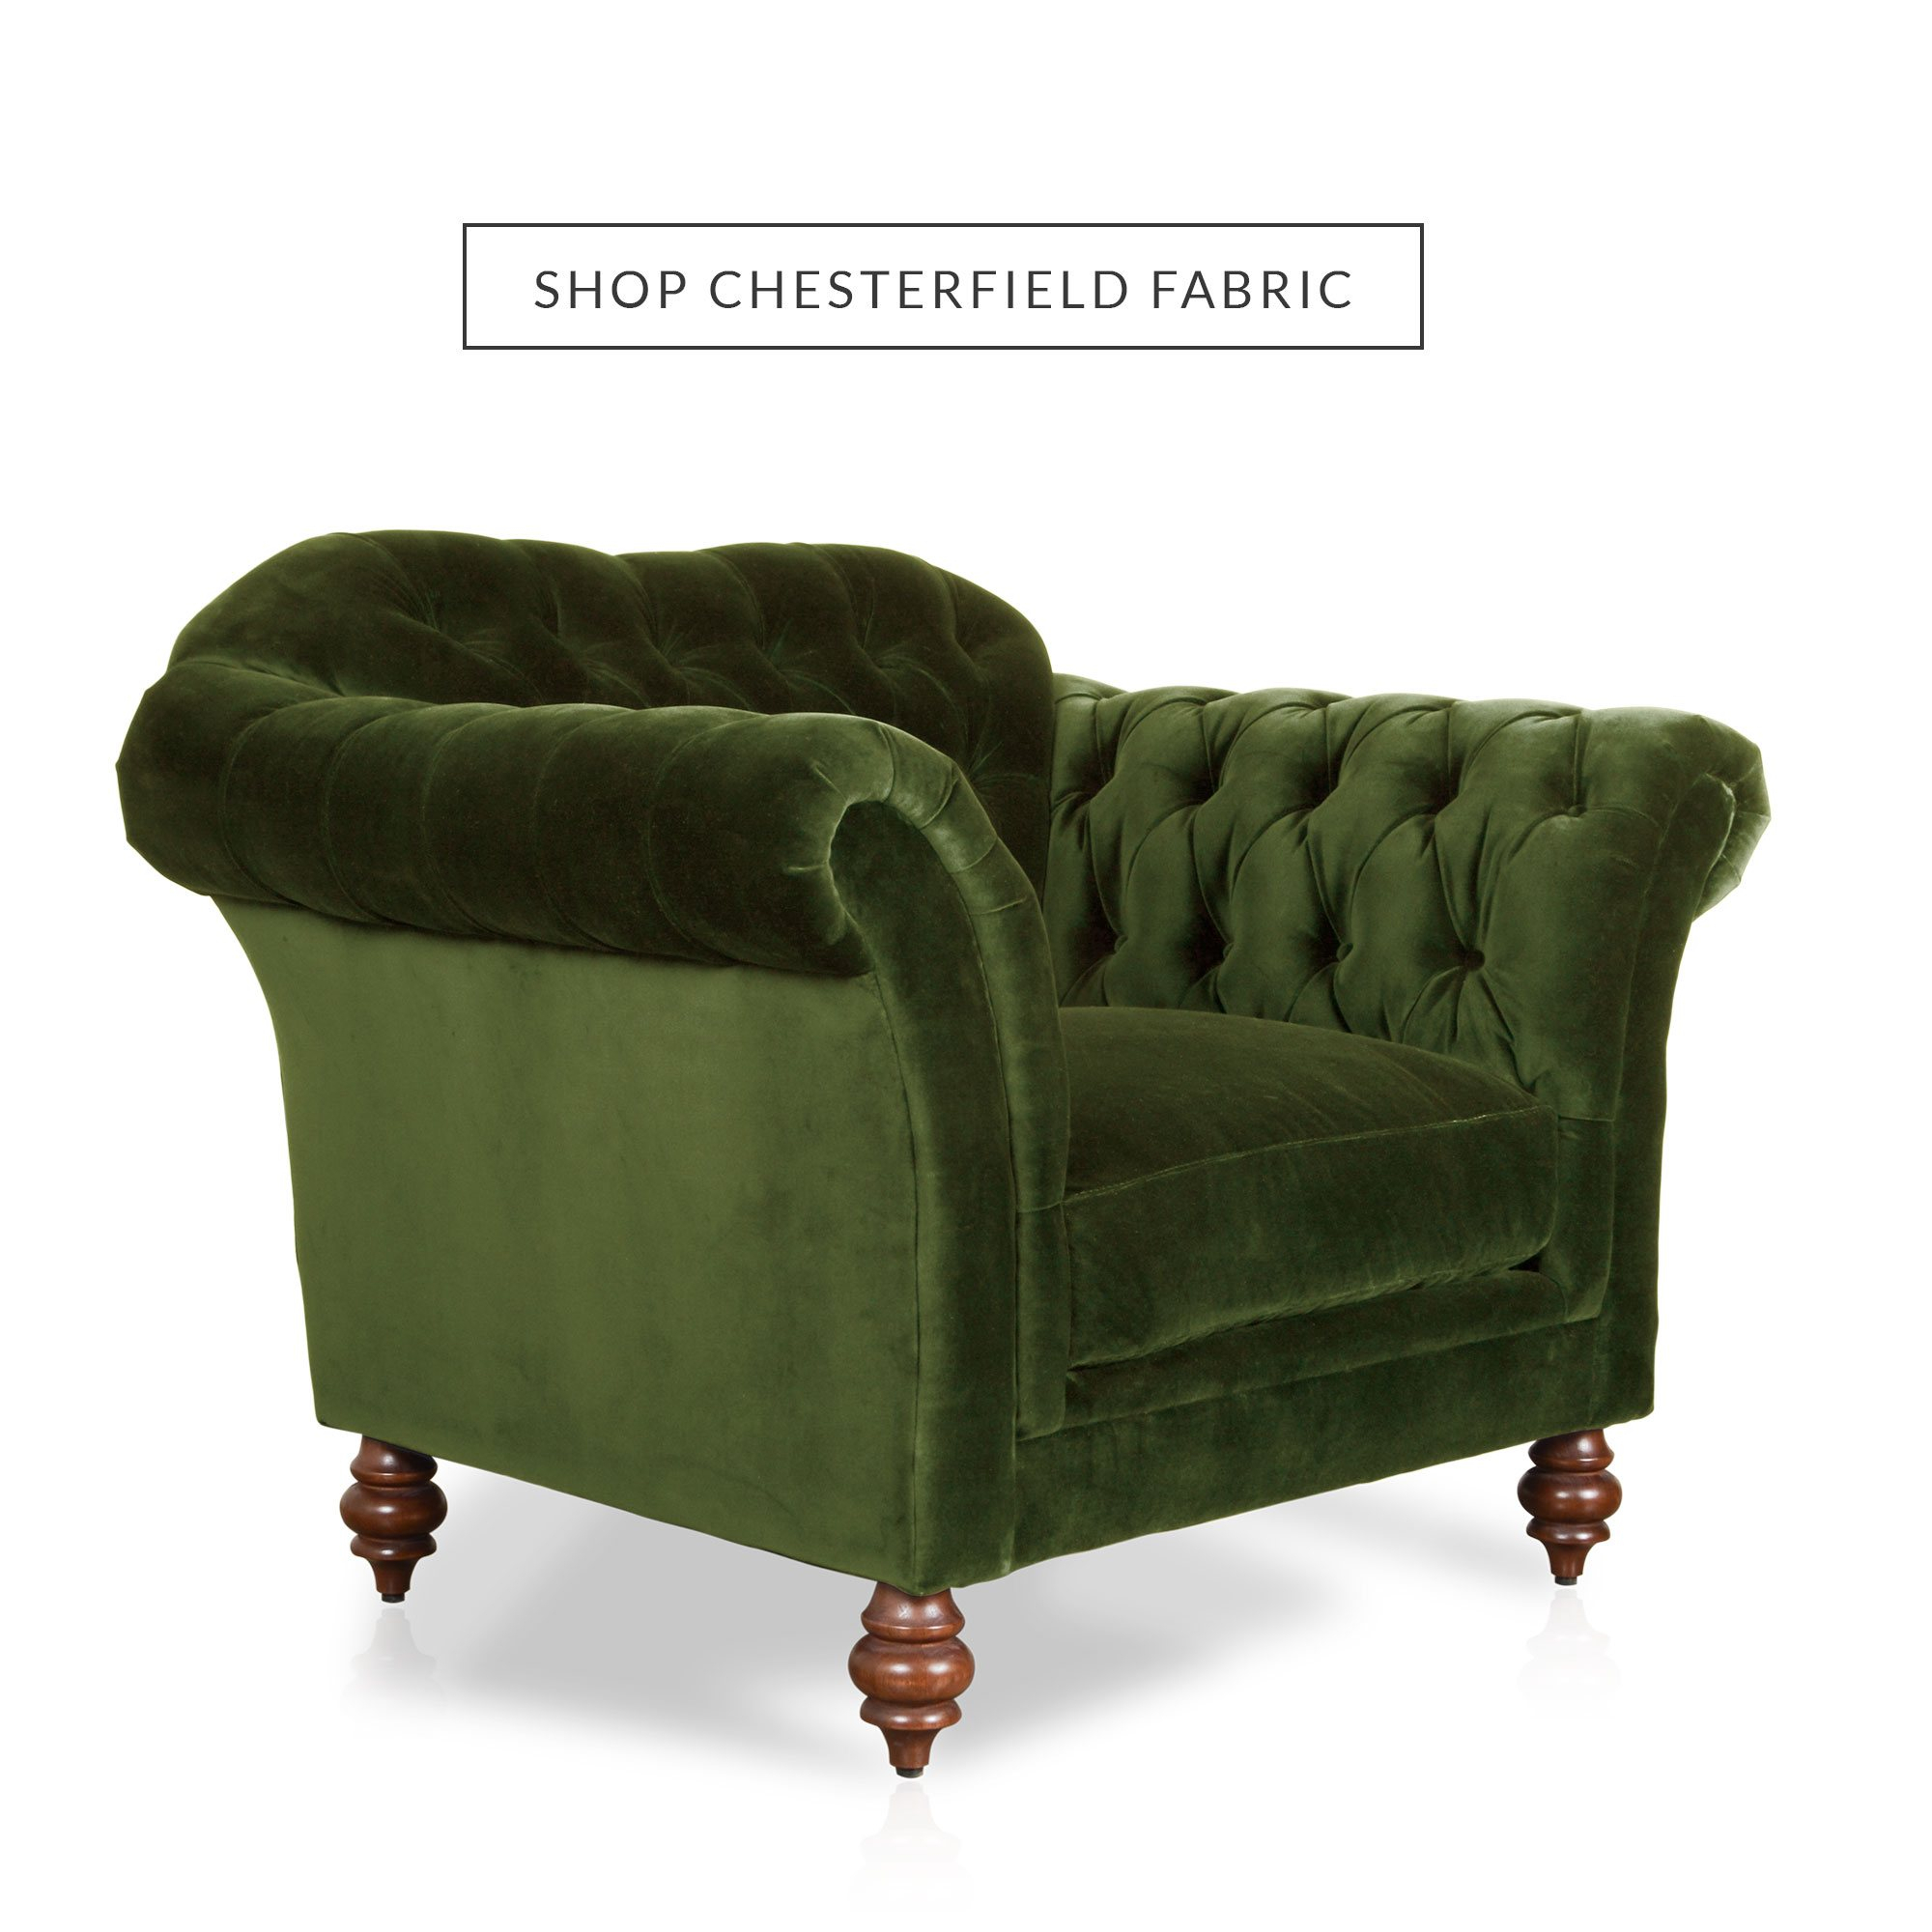 Chesterfield Sofas, Modern Furniture Made In Usa | Cococohome Intended For Gina Blue Leather Sofa Chairs (View 5 of 25)